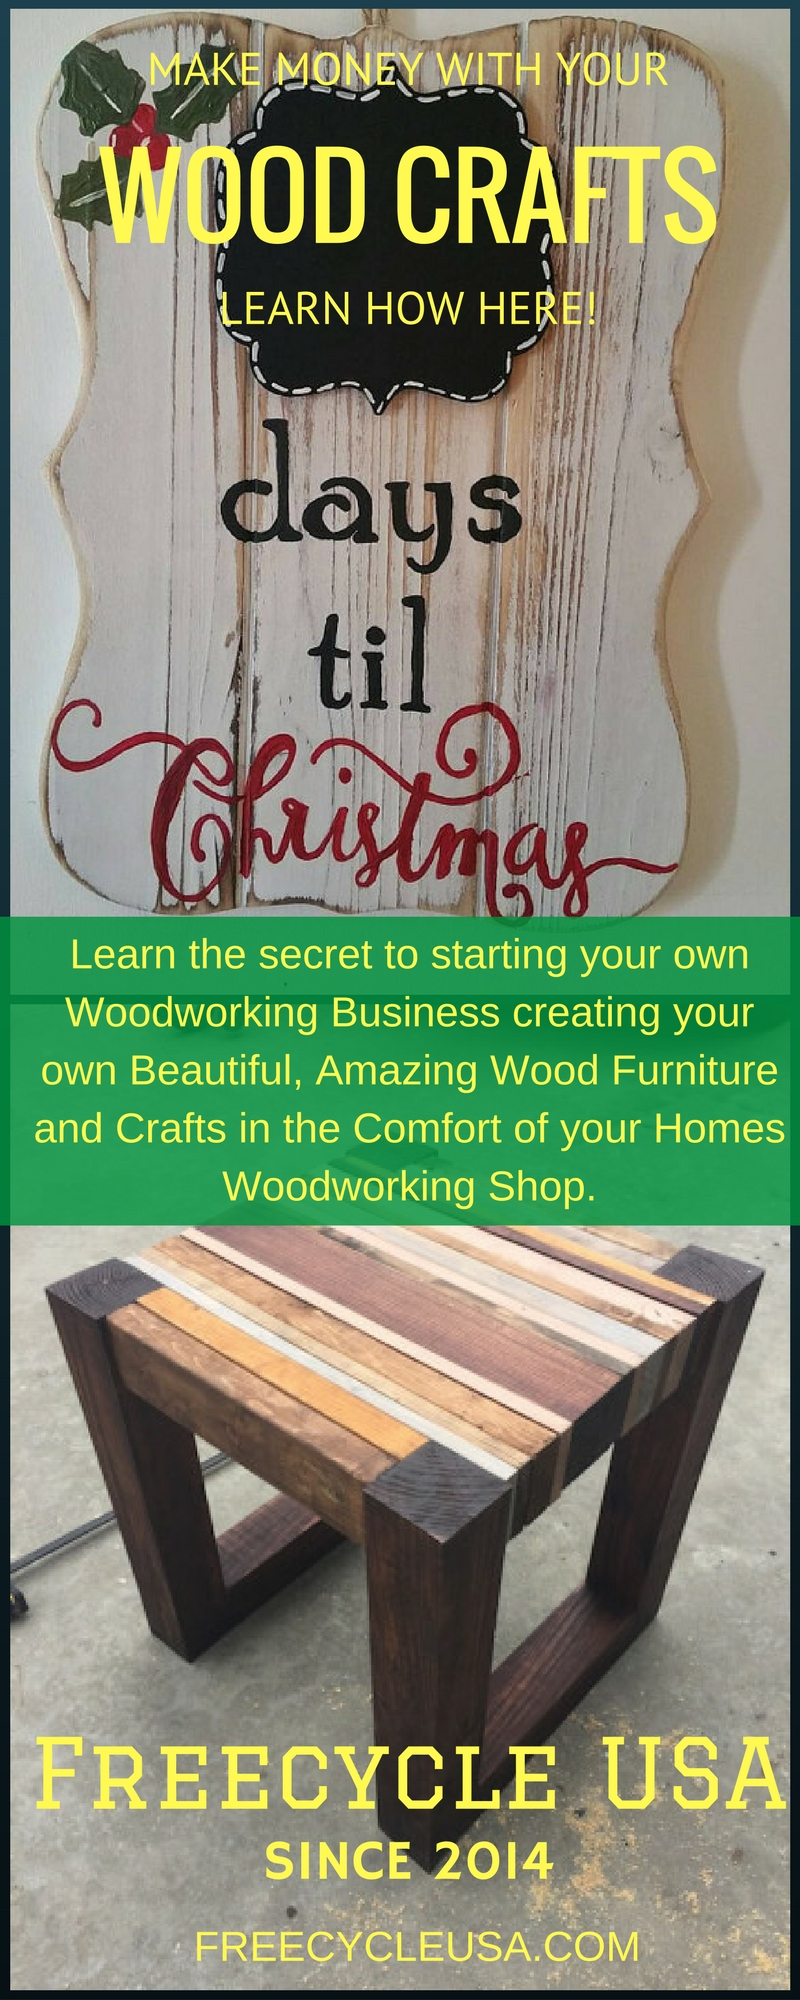 How To Make Easy Money With Your Wood Crafts - FREECYCLE USA